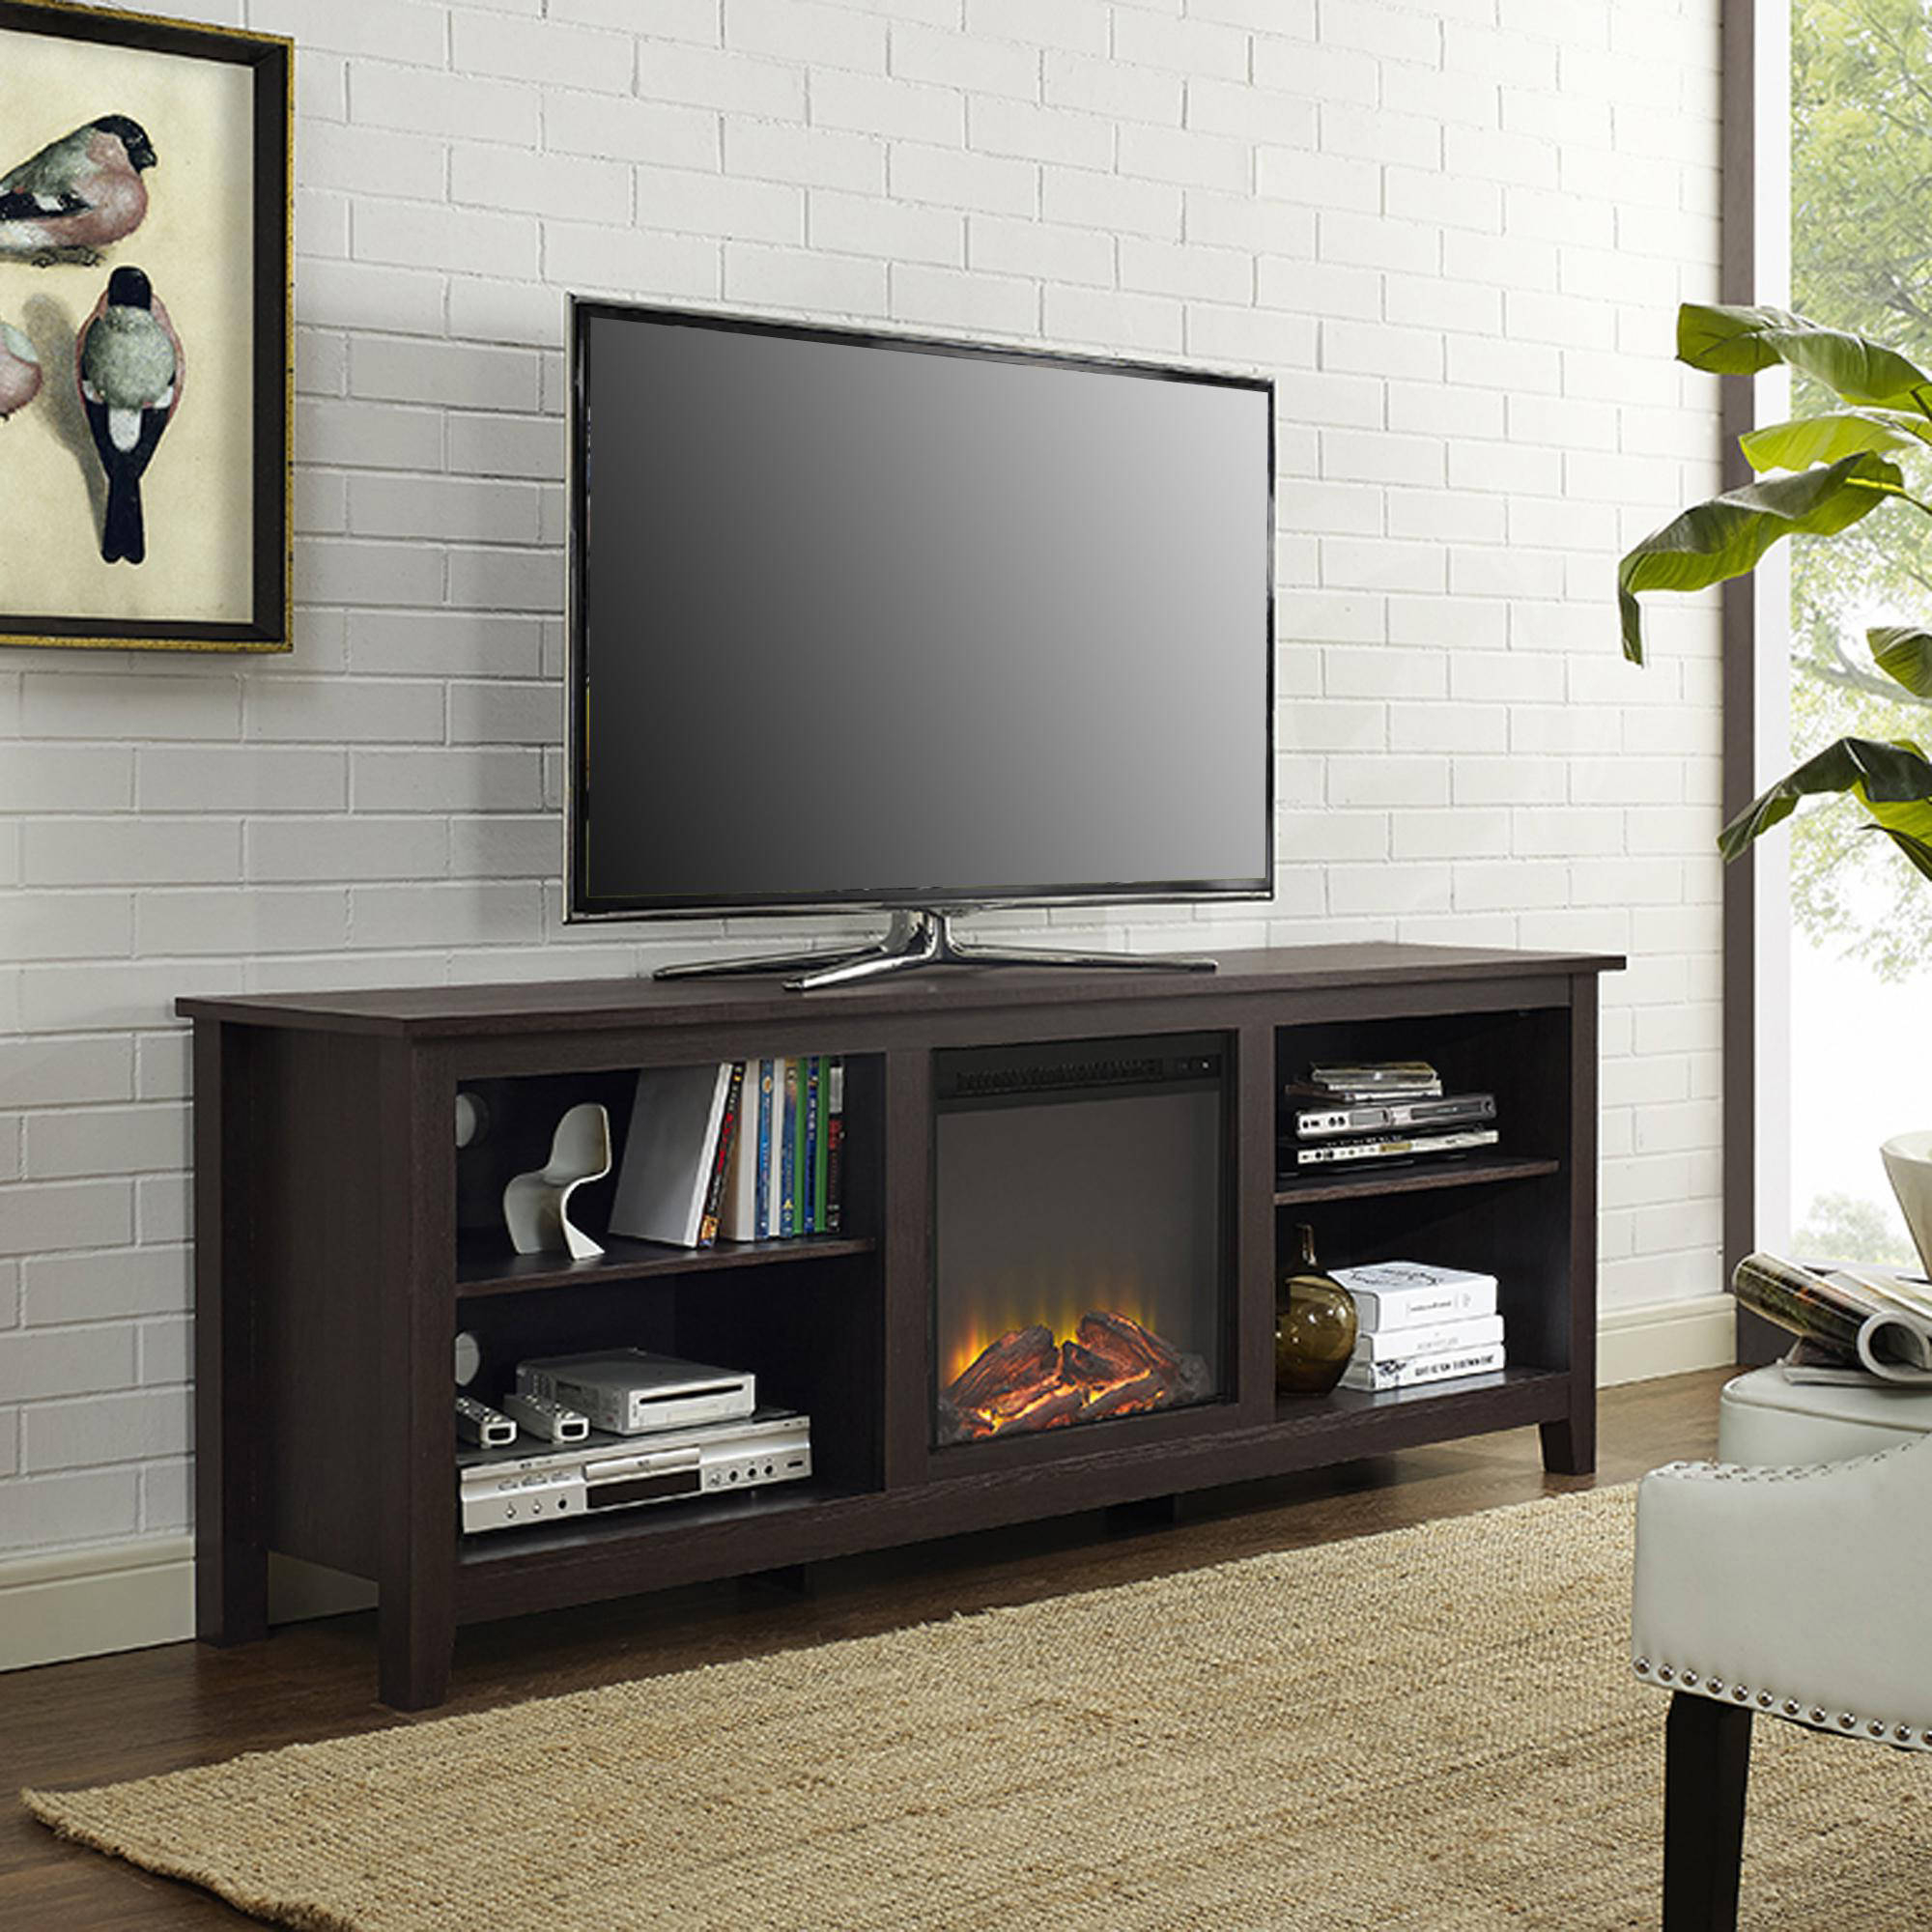 Most Popular Tv Stands & Entertainment Centers – Walmart With Regard To Entertainment Center Tv Stands (View 9 of 20)